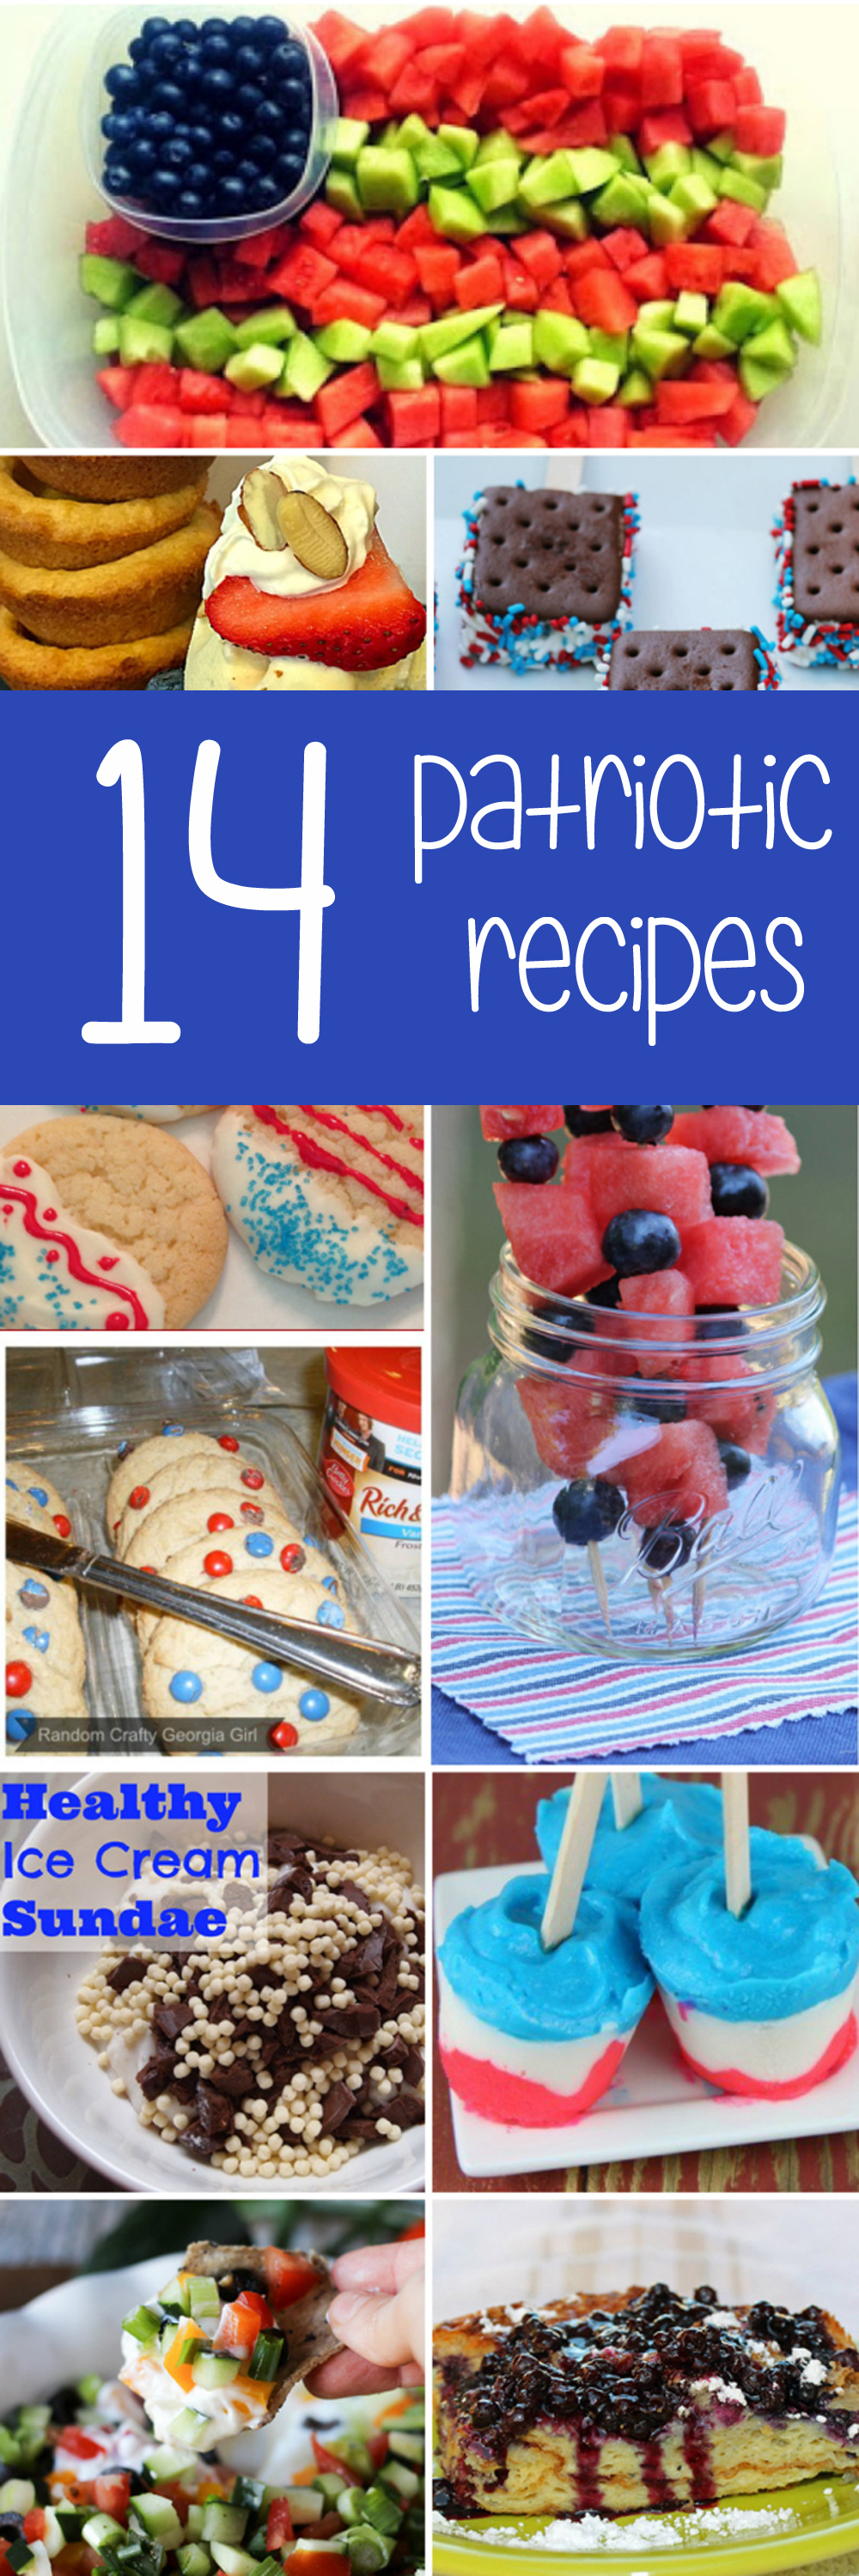 Patriotic recipes for labor day, fourth of july and memorial day.